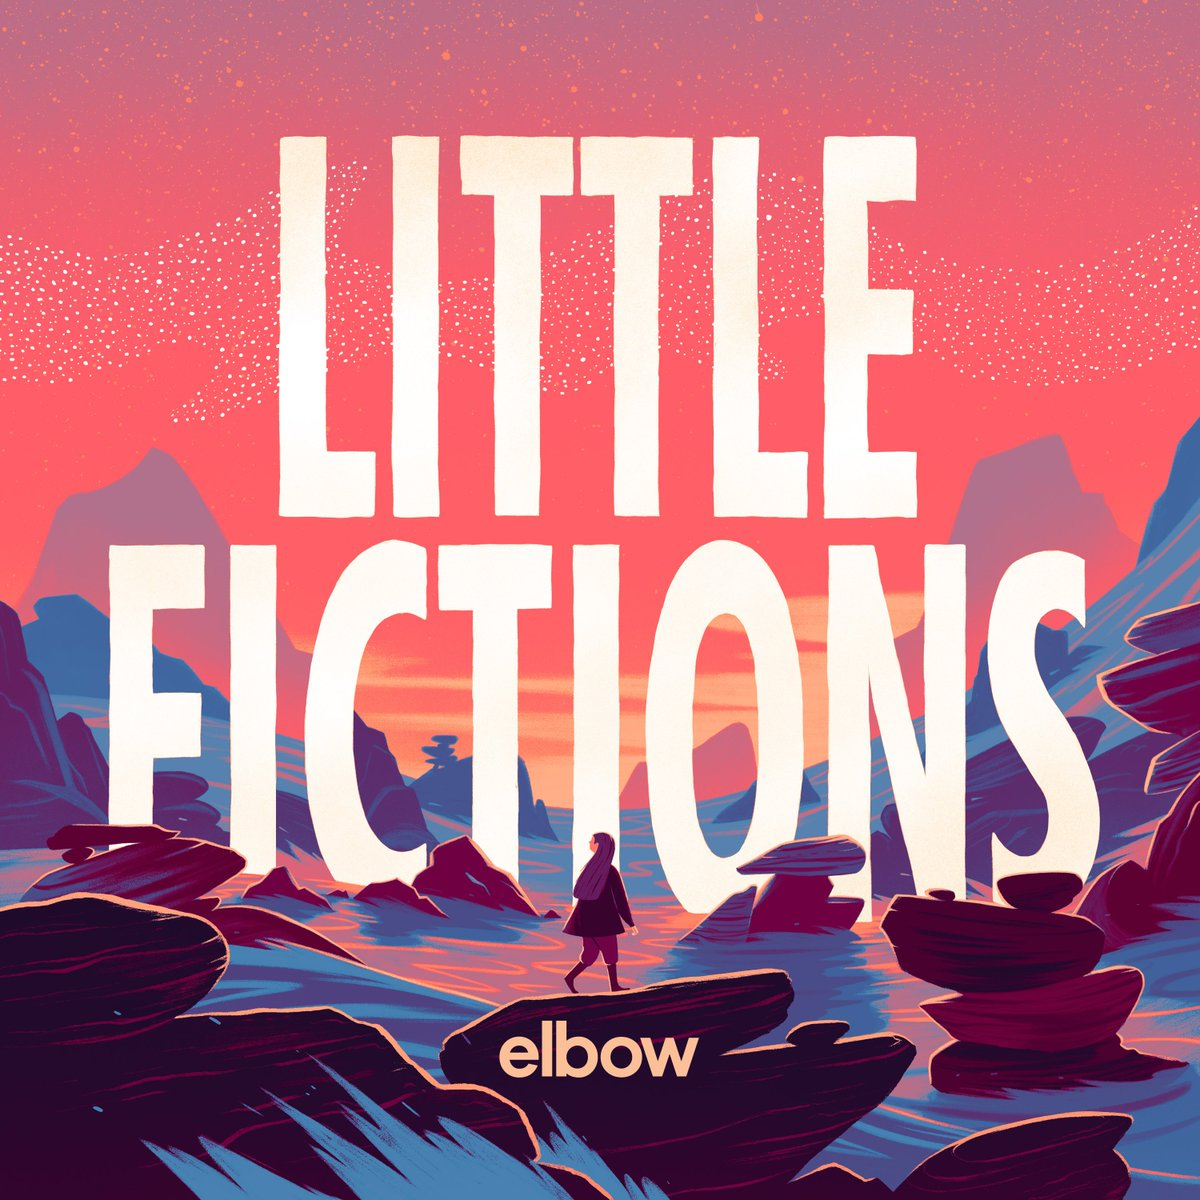 elbow's new album 'Little Fictions' will be released 3rd February 2017. https://t.co/9hStDtQ7V8